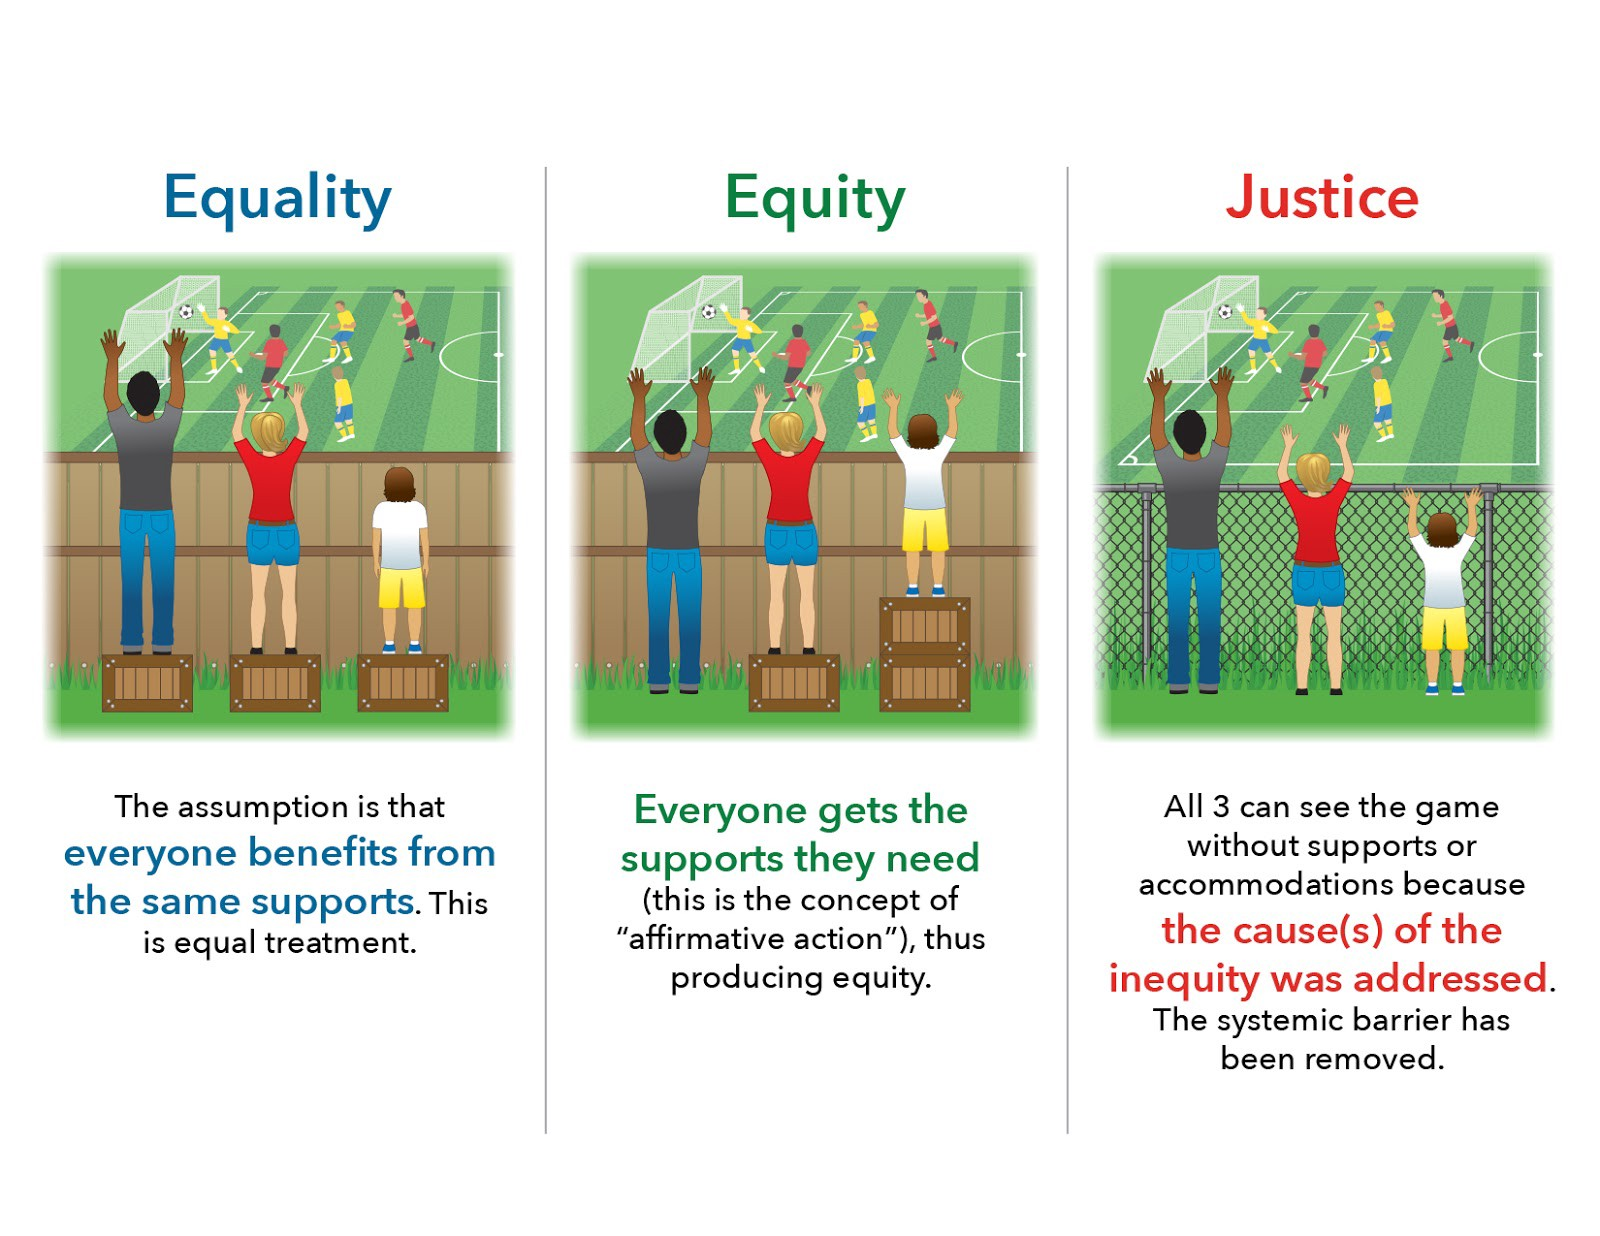 Equality, Equity, Justice: 3 pictures of equal/equitable box heights to see over a fence, then justice in removing the fence.